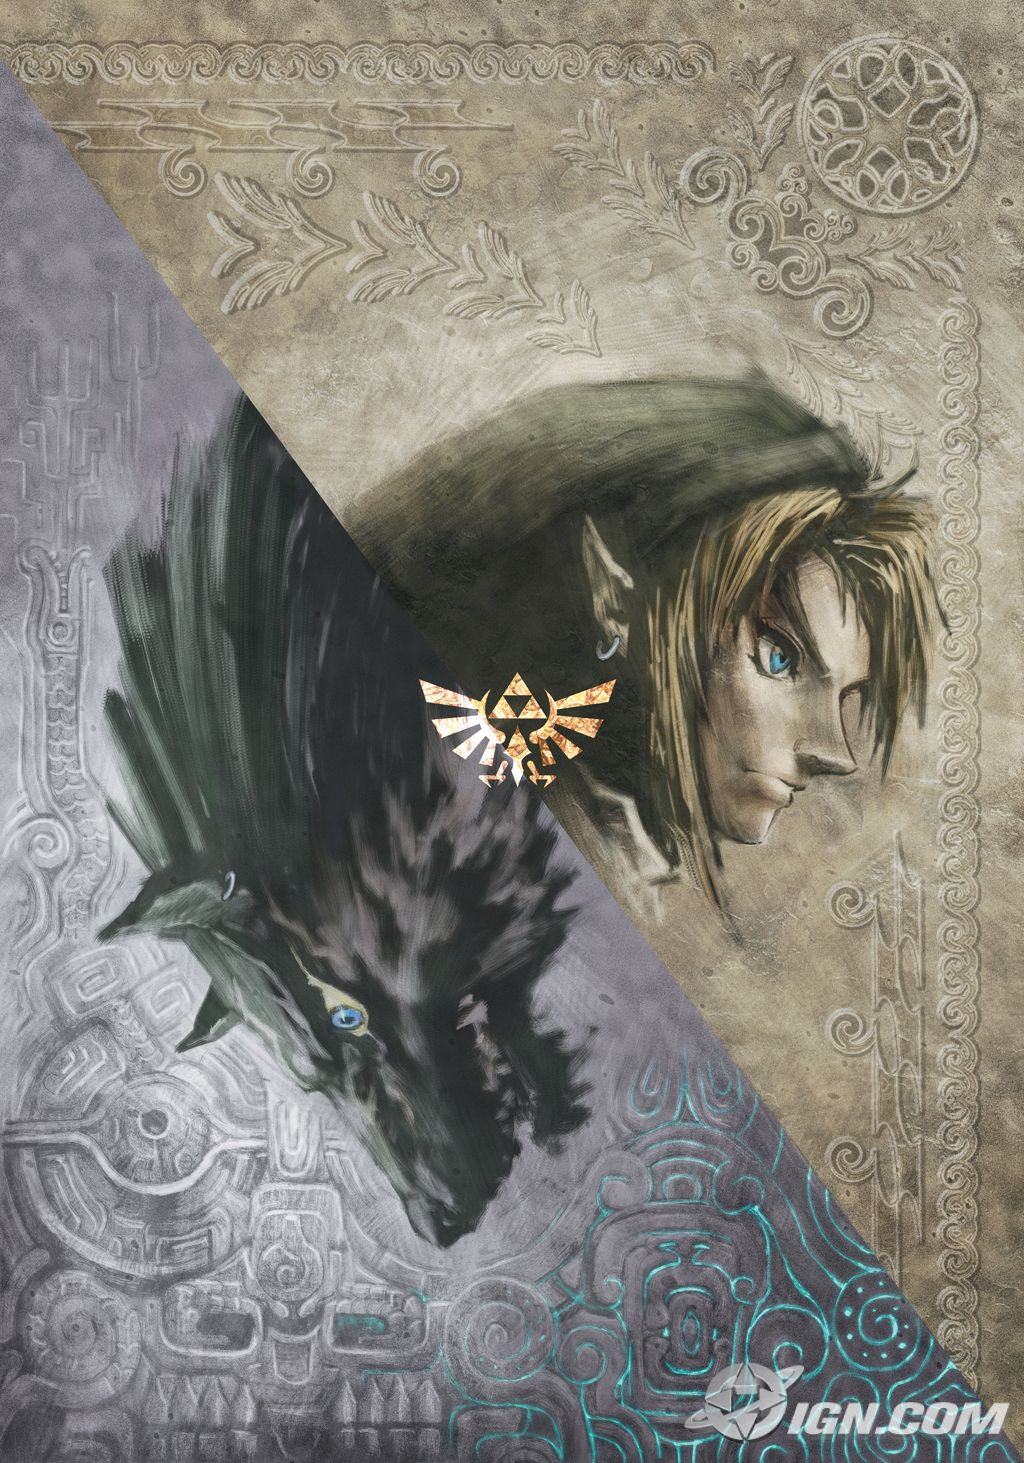 http://www.werewolves.com/wordpress/wp-content/uploads/2010/10/the-legend-of-zelda-twilight-princess.jpg